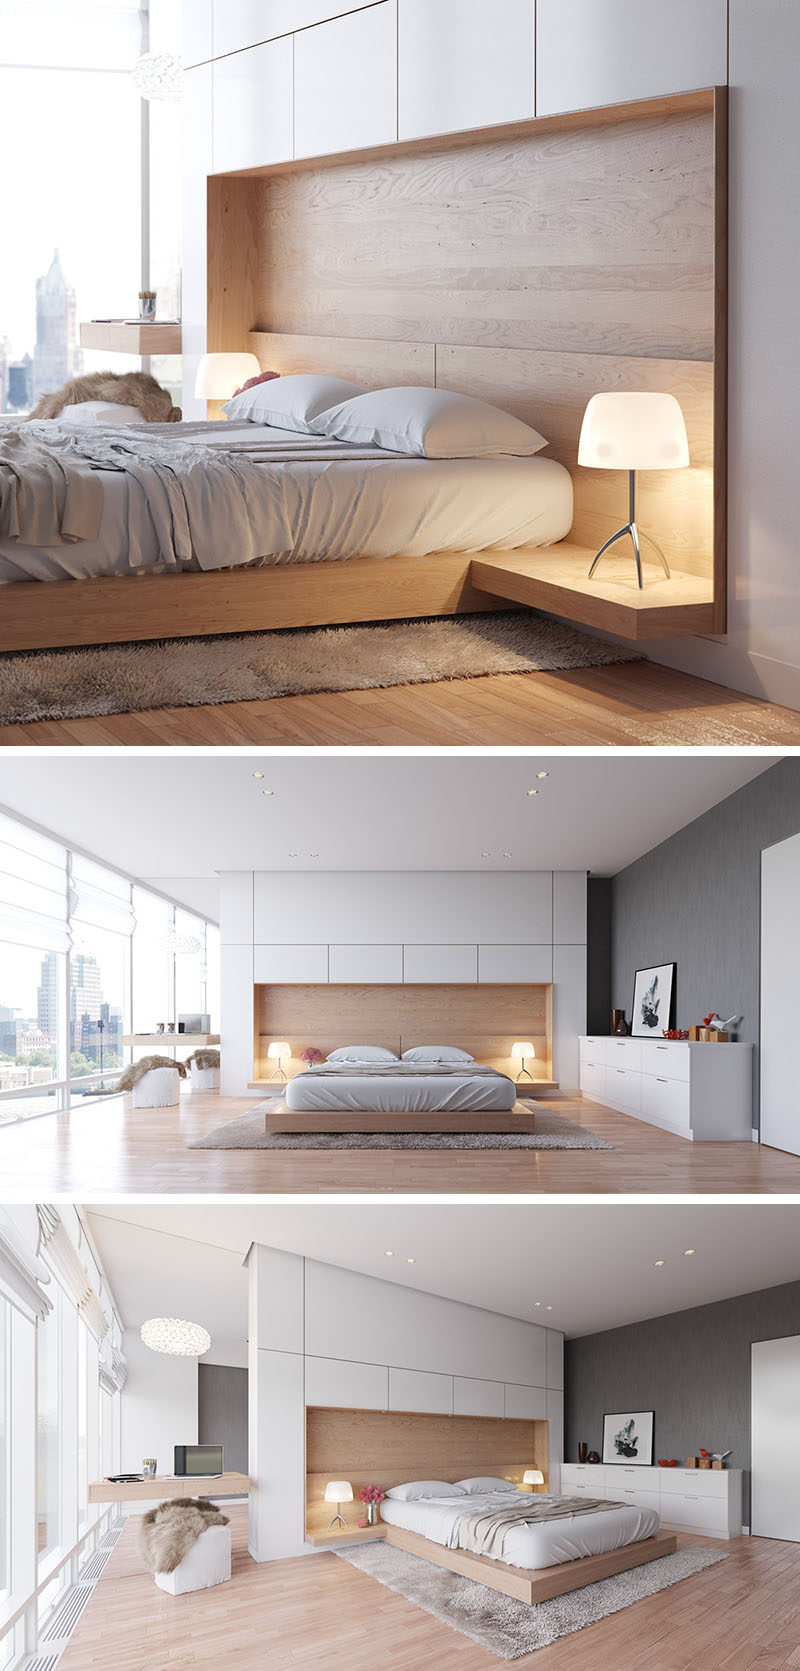 bedroom design idea bine your bed and side table into one